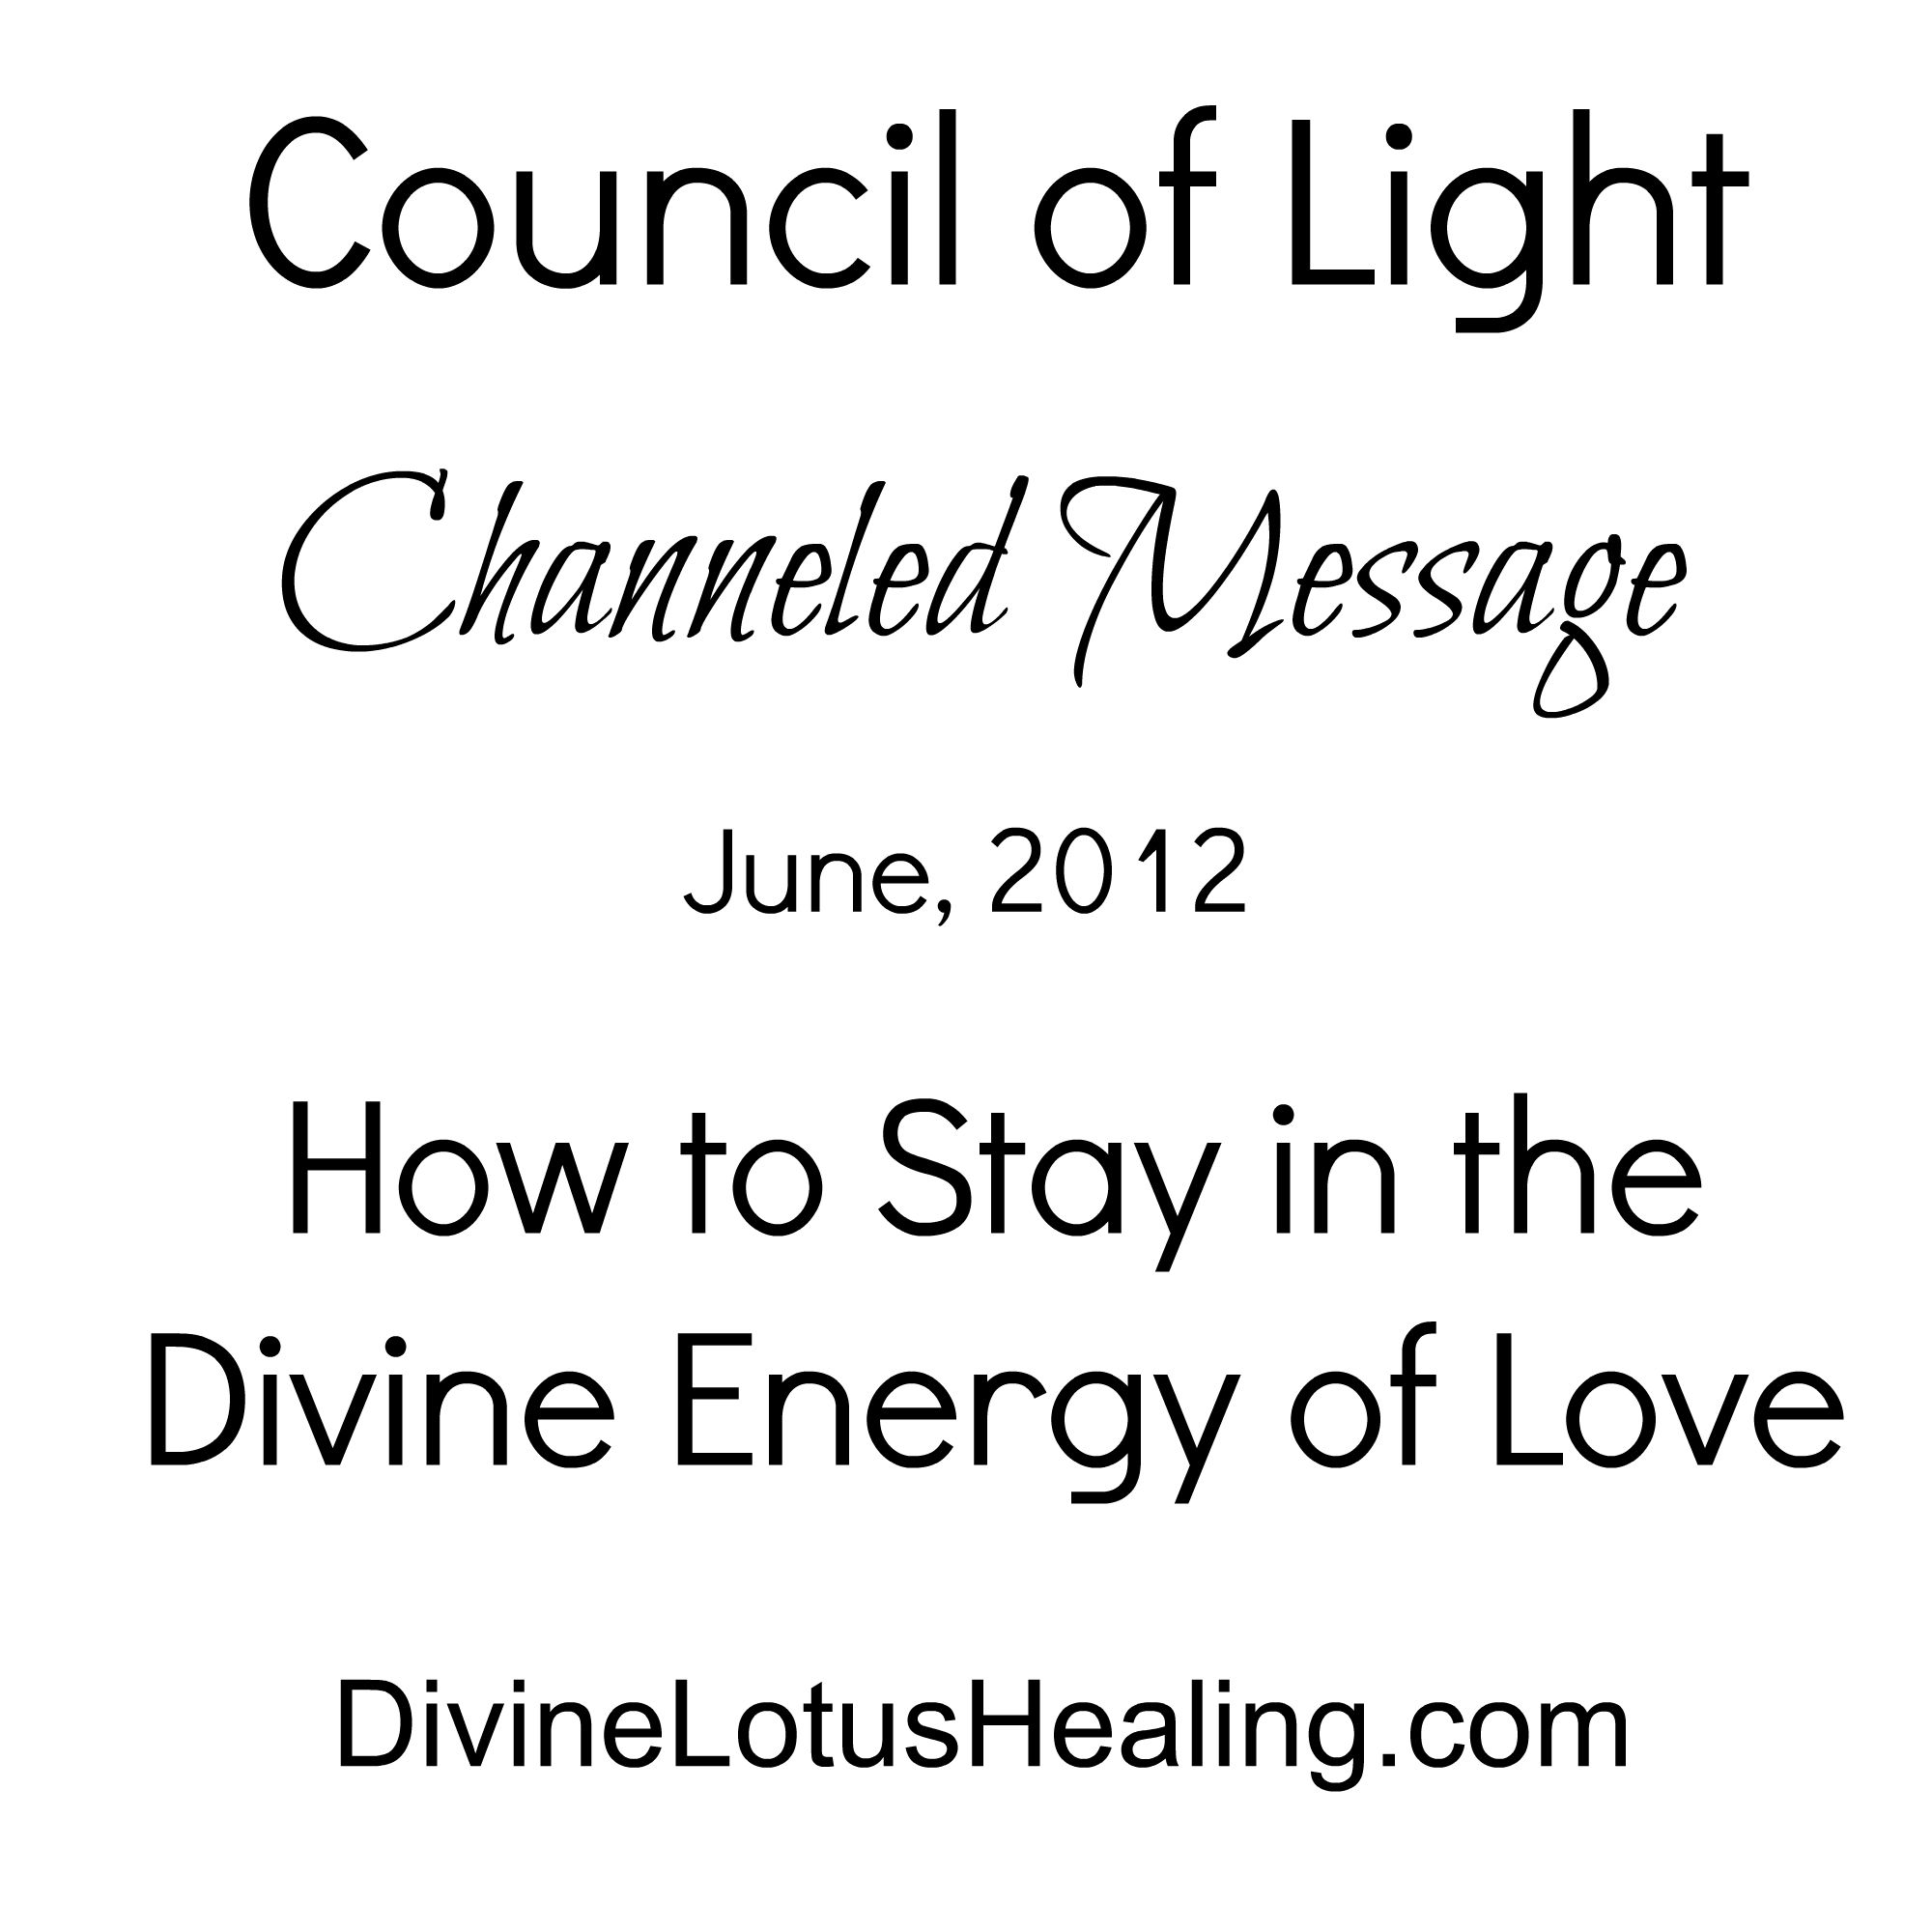 Council of Light June 2012 Channeled Message